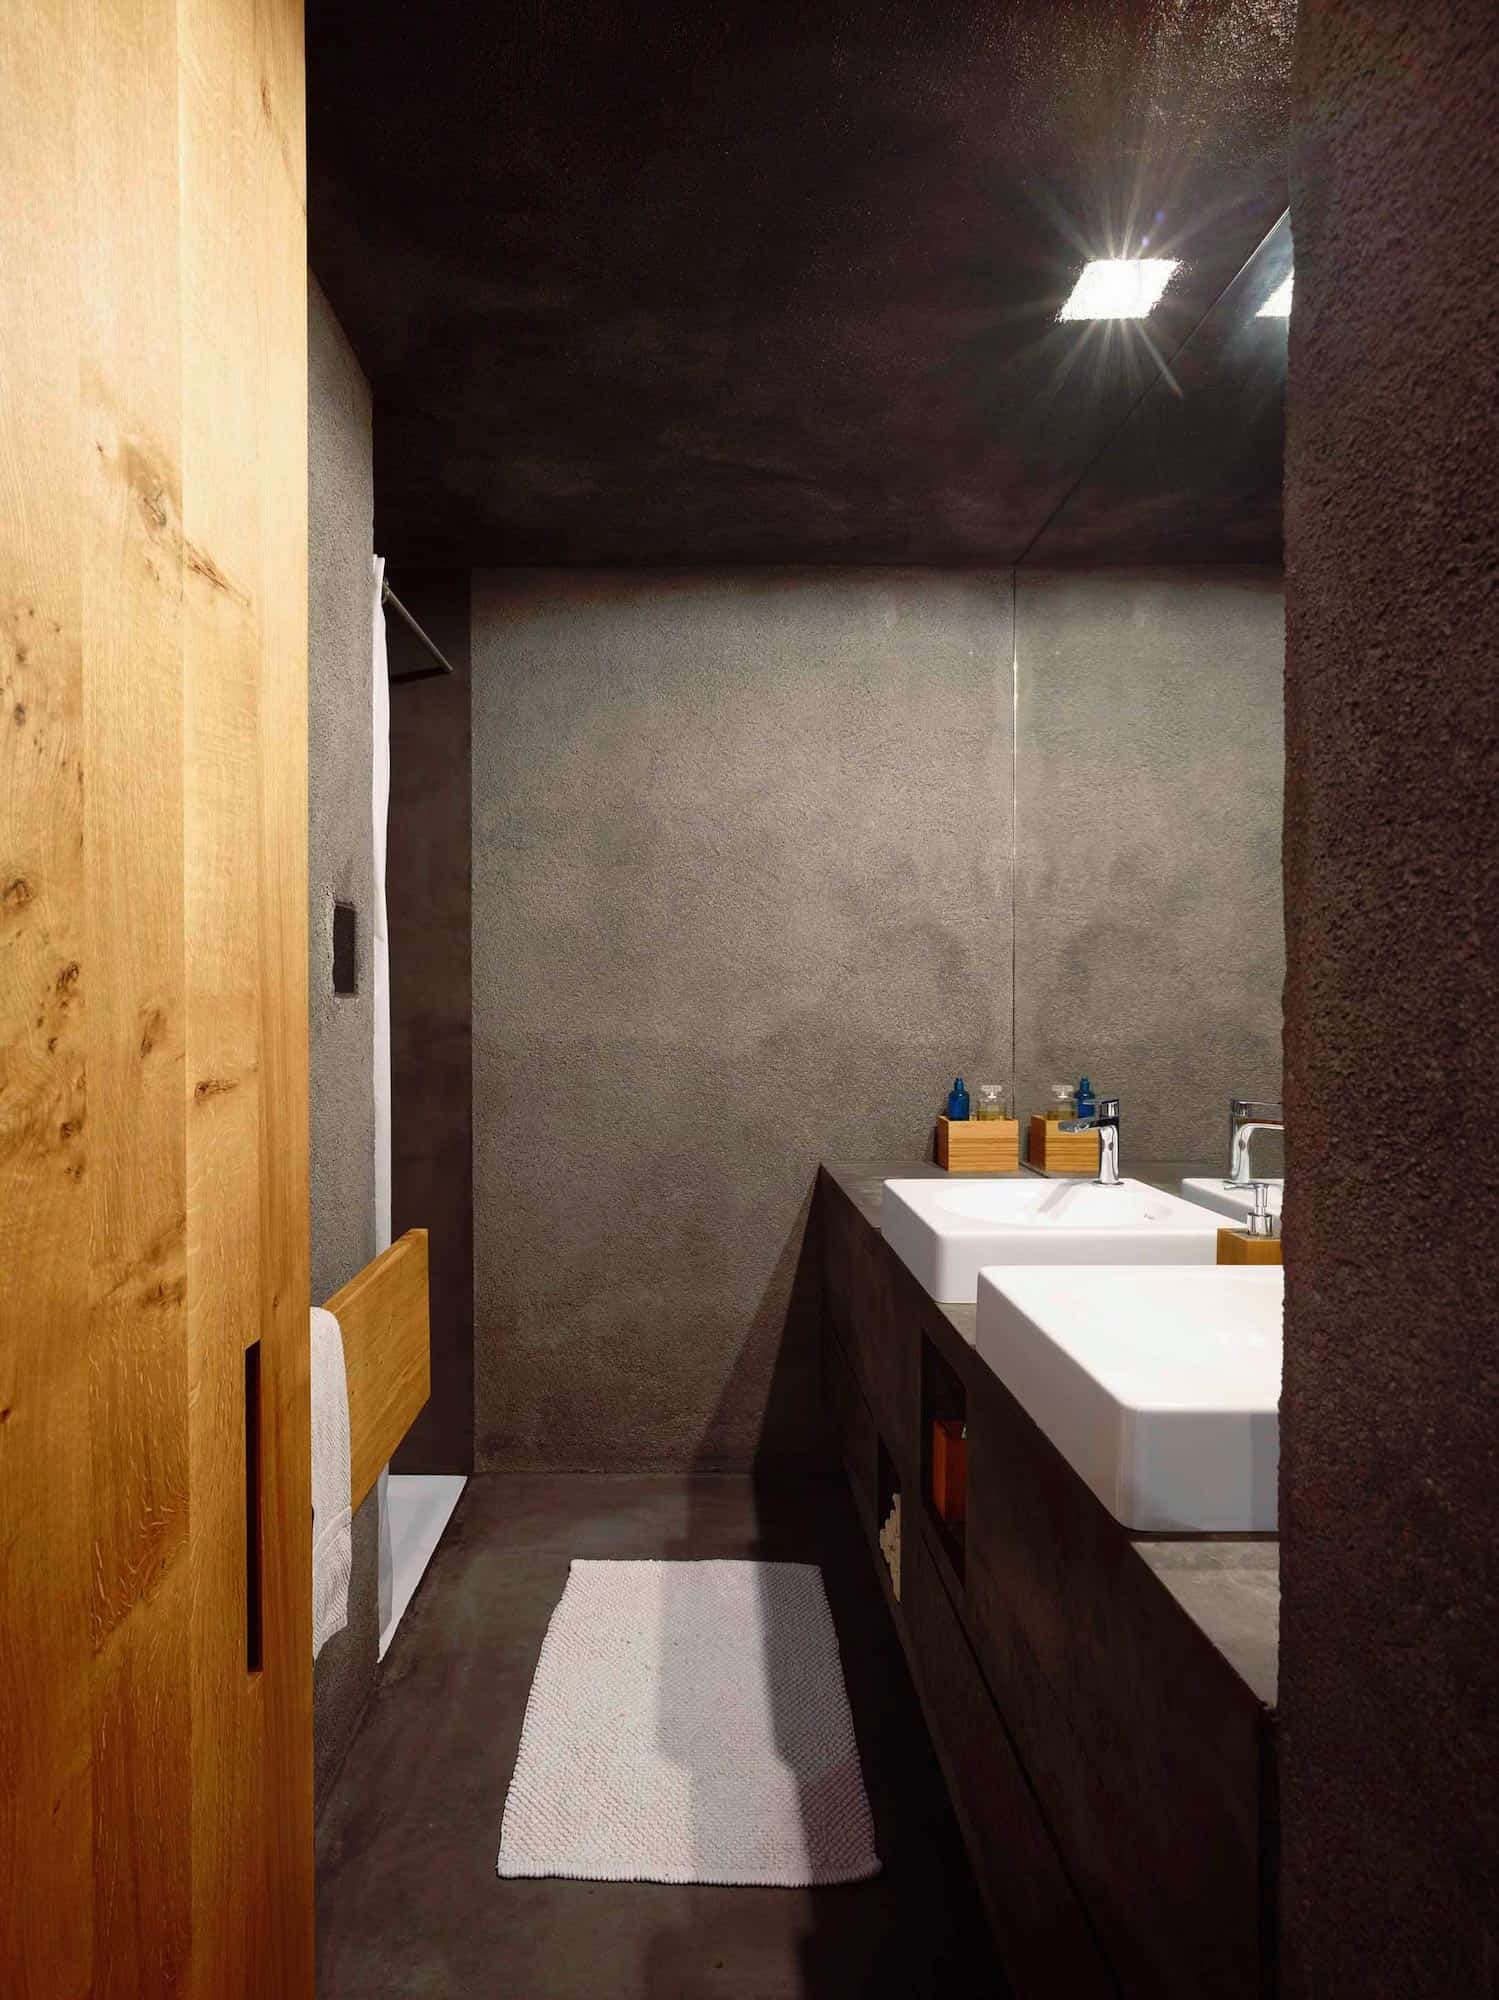 Tiny Bunker Home Transformed Into a Mesmerizing Refuge (14)